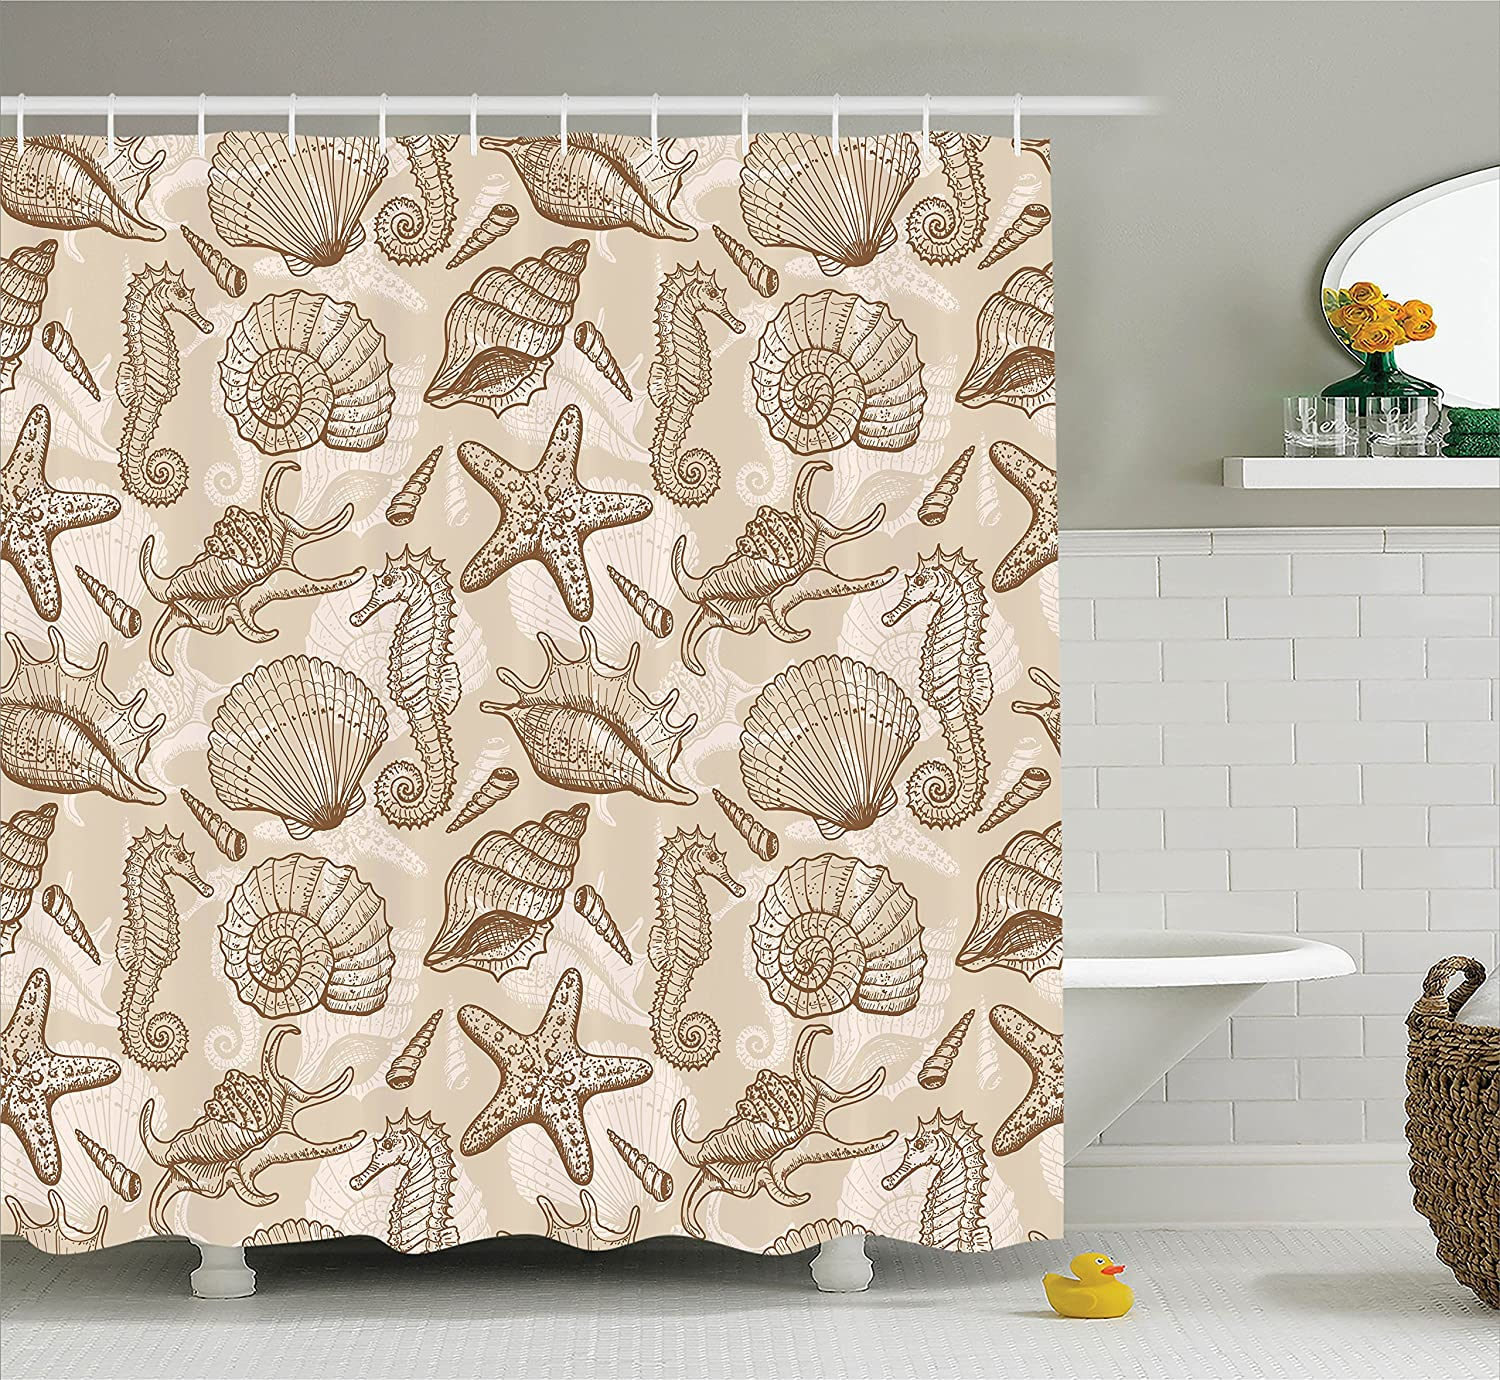 Bathroom Accessories Turquoise Ambesonne Turquoise Decor Shower Curtain Set llustration of Floral Victorian Style Curvy Lines Wave Water Butterfly Pattern Design 75 Inches Long